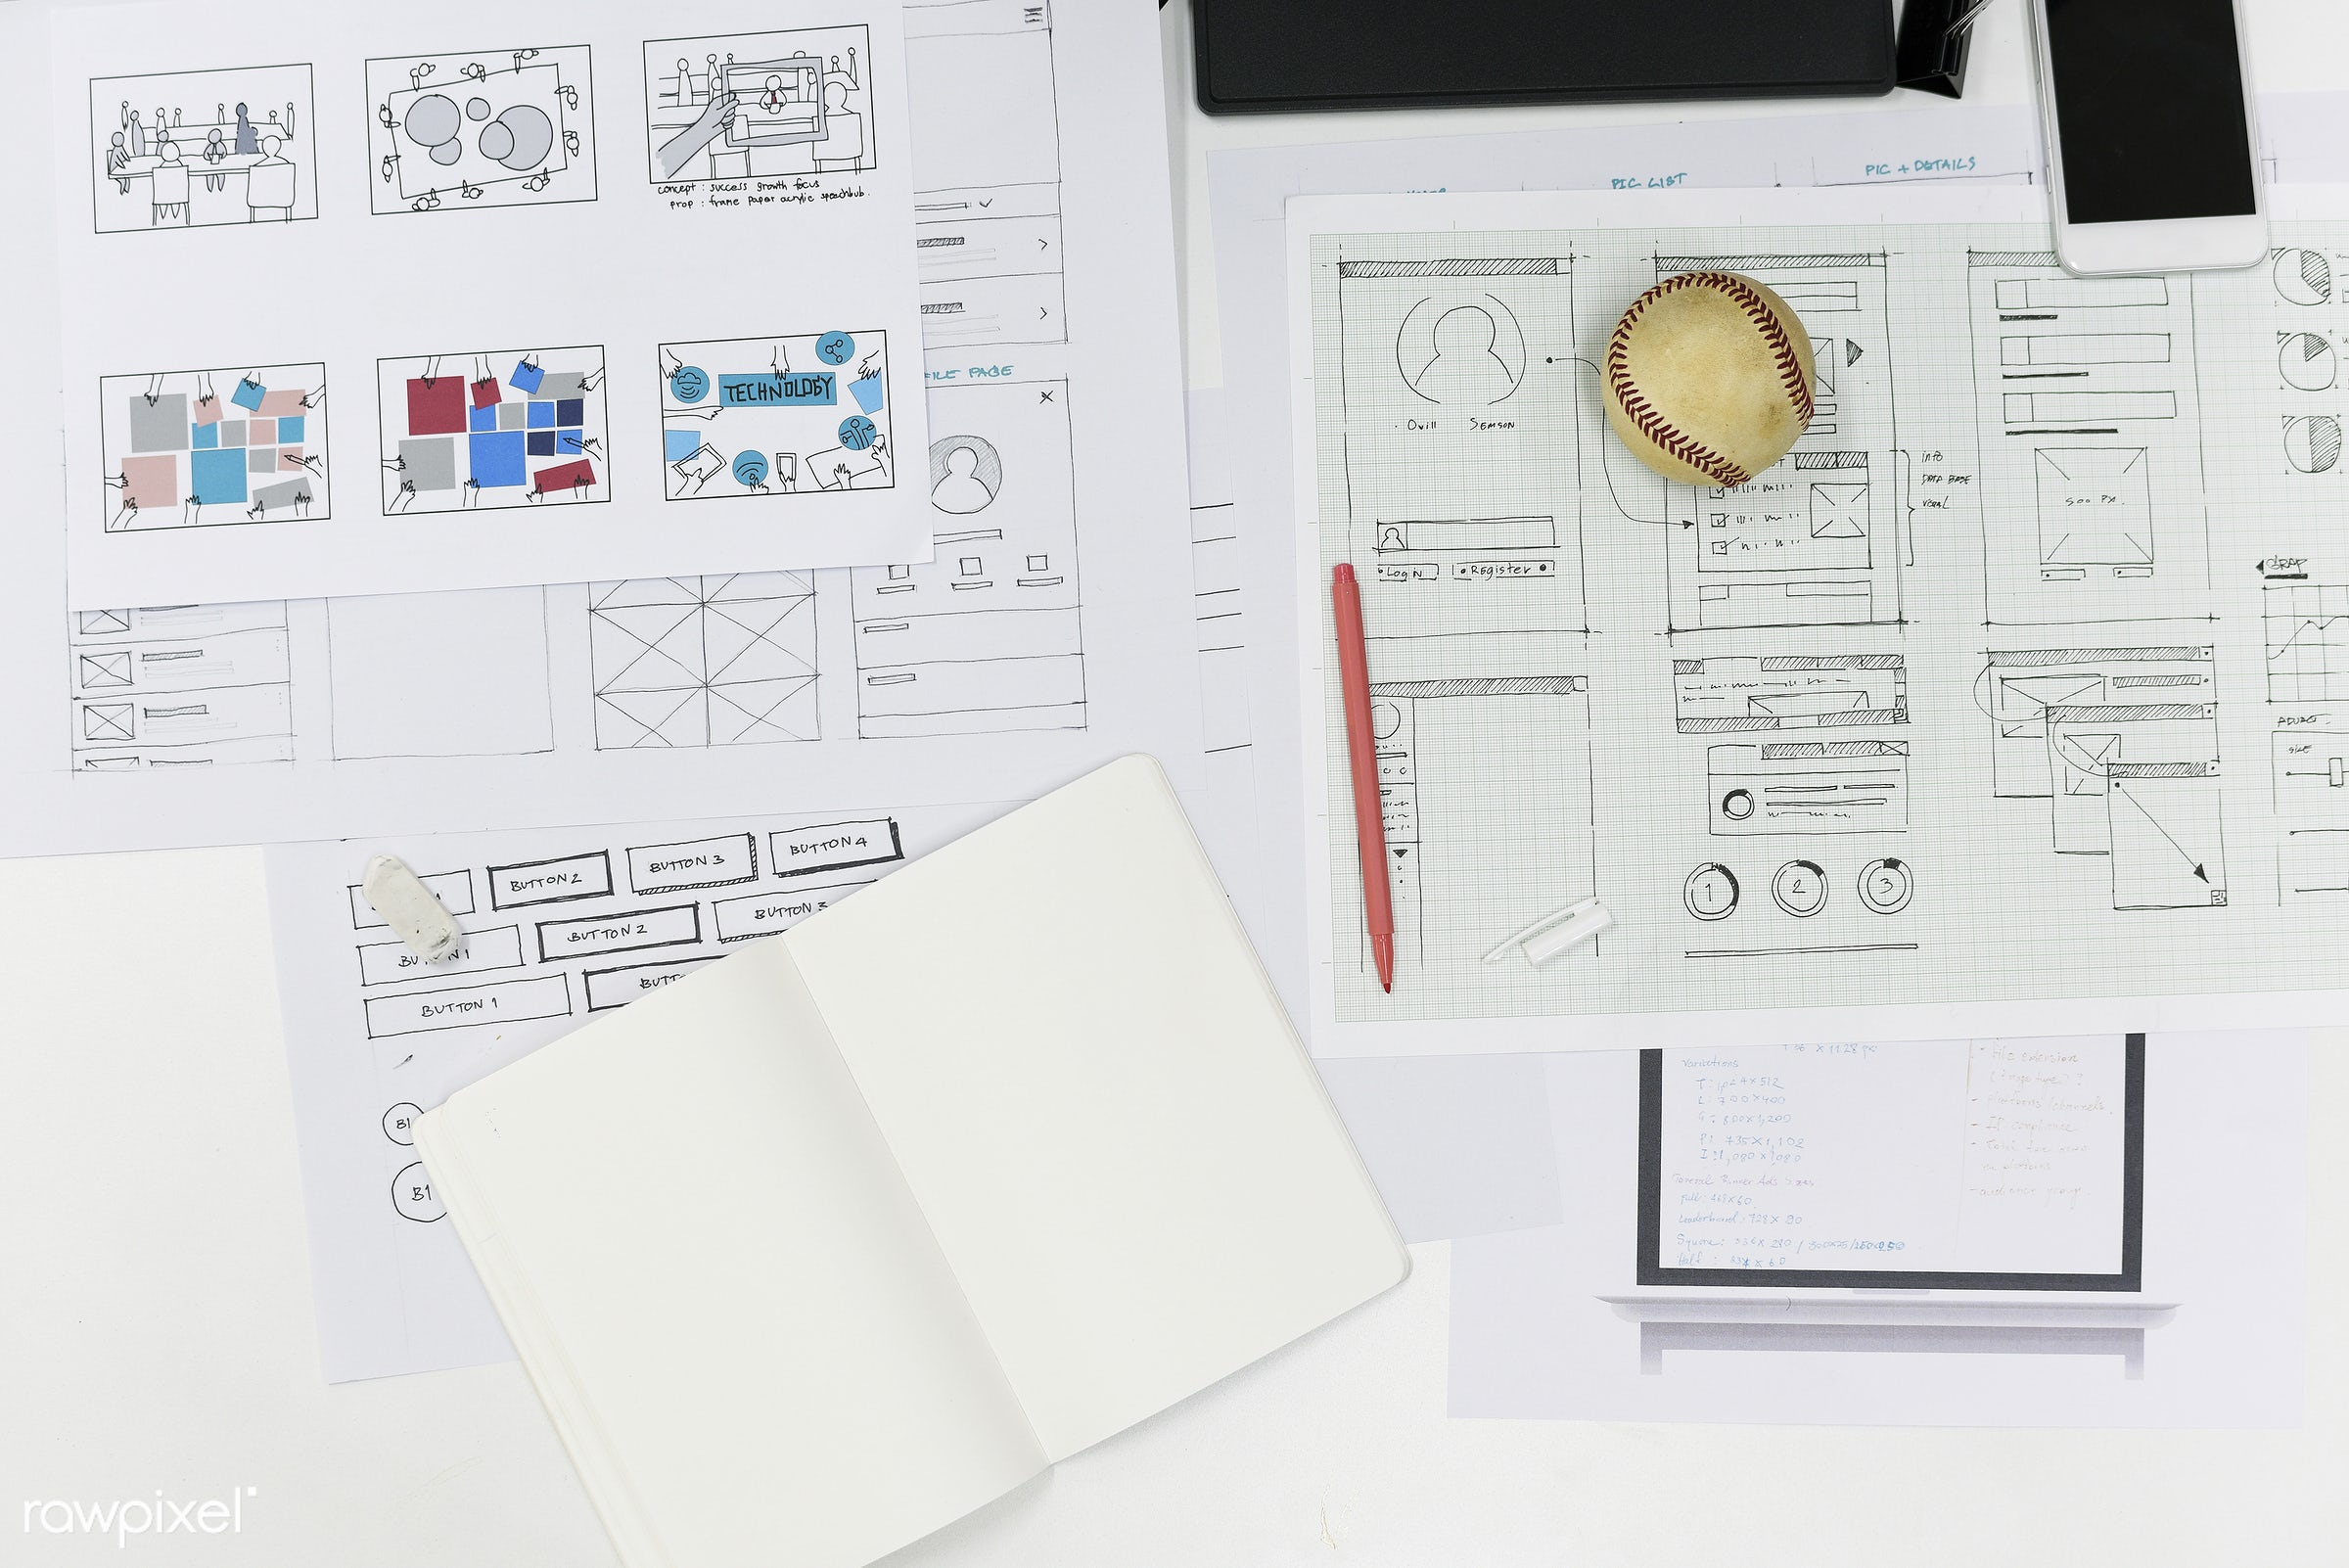 Startup Business Website Content Design Layout on Paper - blank, career, communication, company, connection, copy space,...